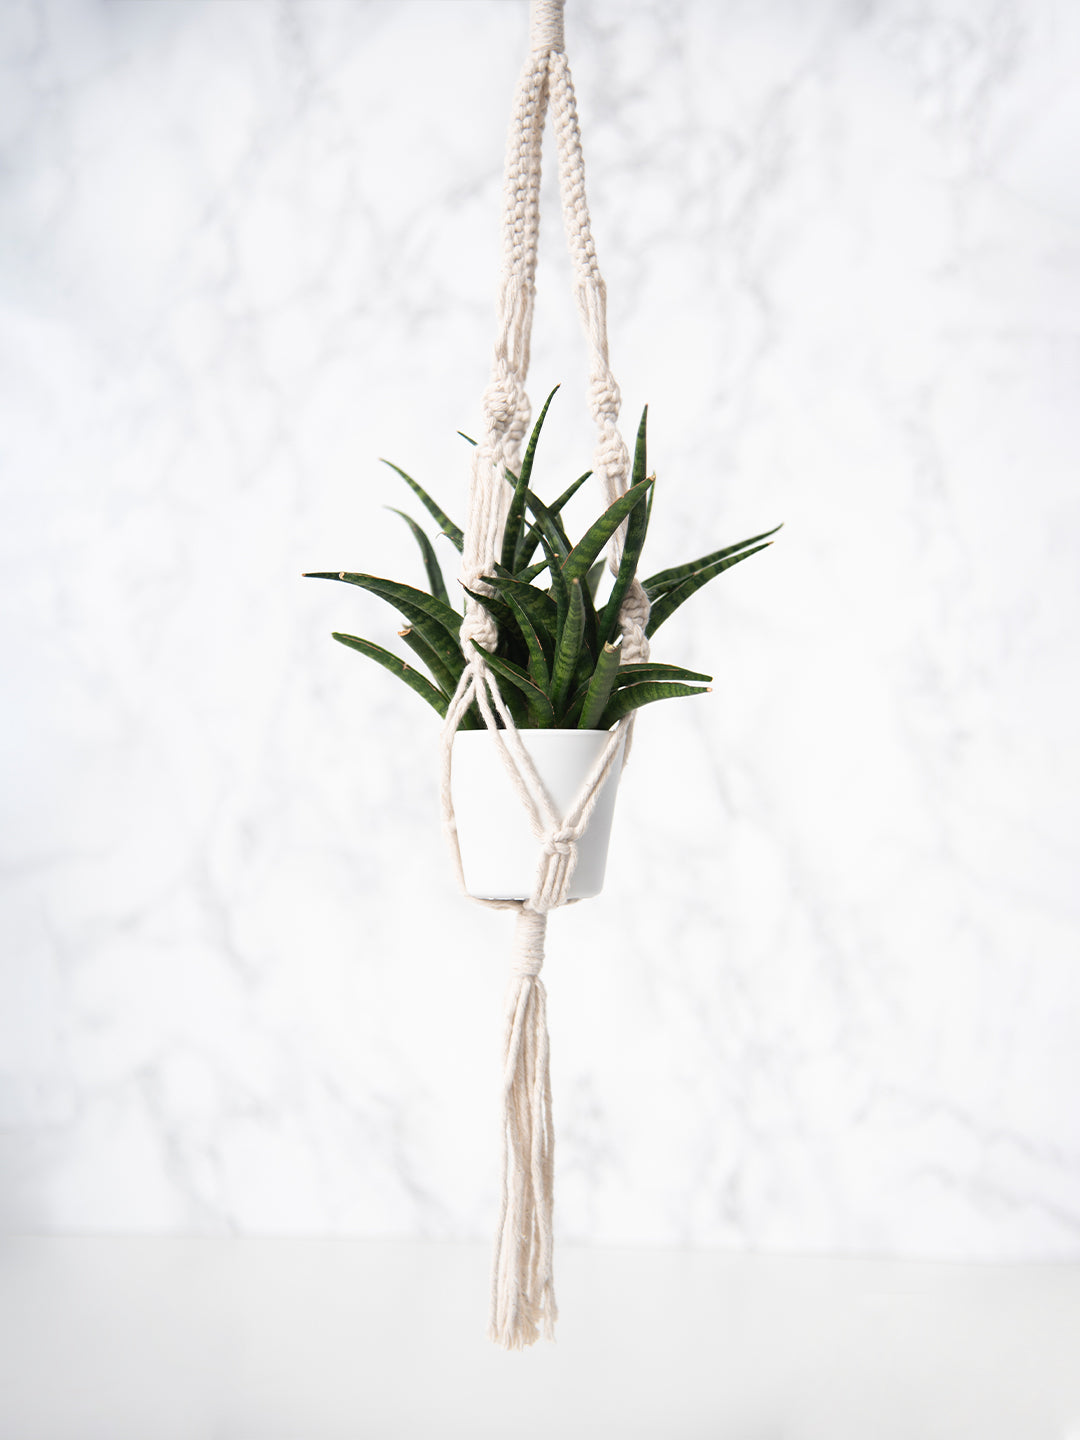 Mini Macrame Plant Hanger Craft Kit